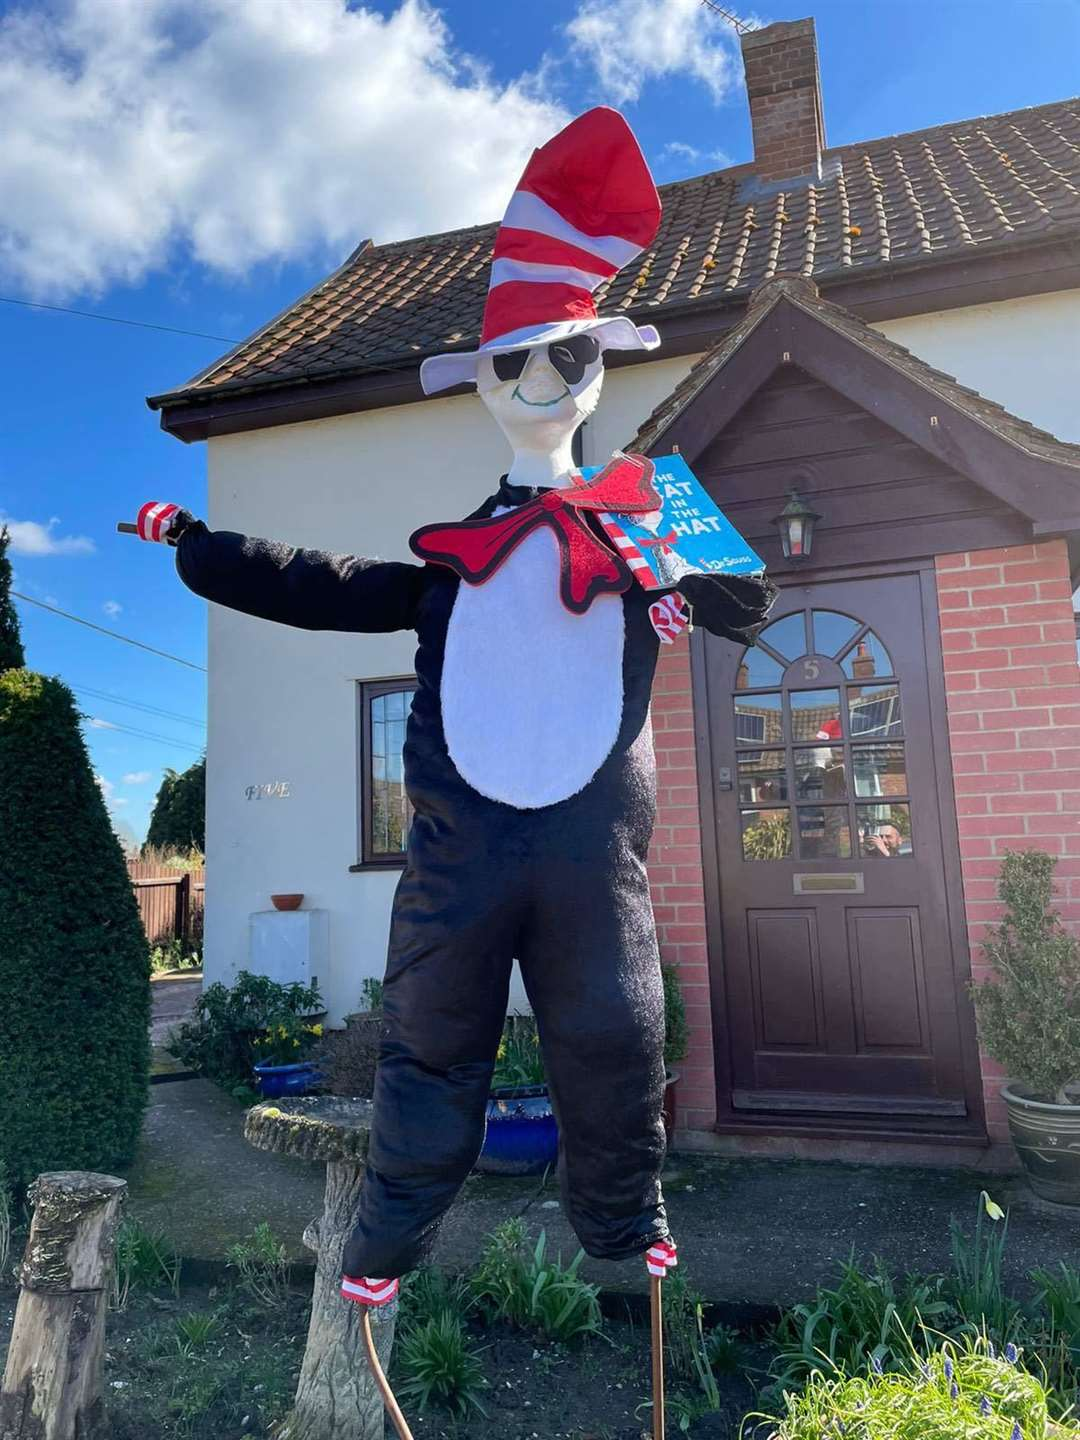 It's the Cat in the Hat, there's no doubt about that. Picture: Stowmarket Library Facebook